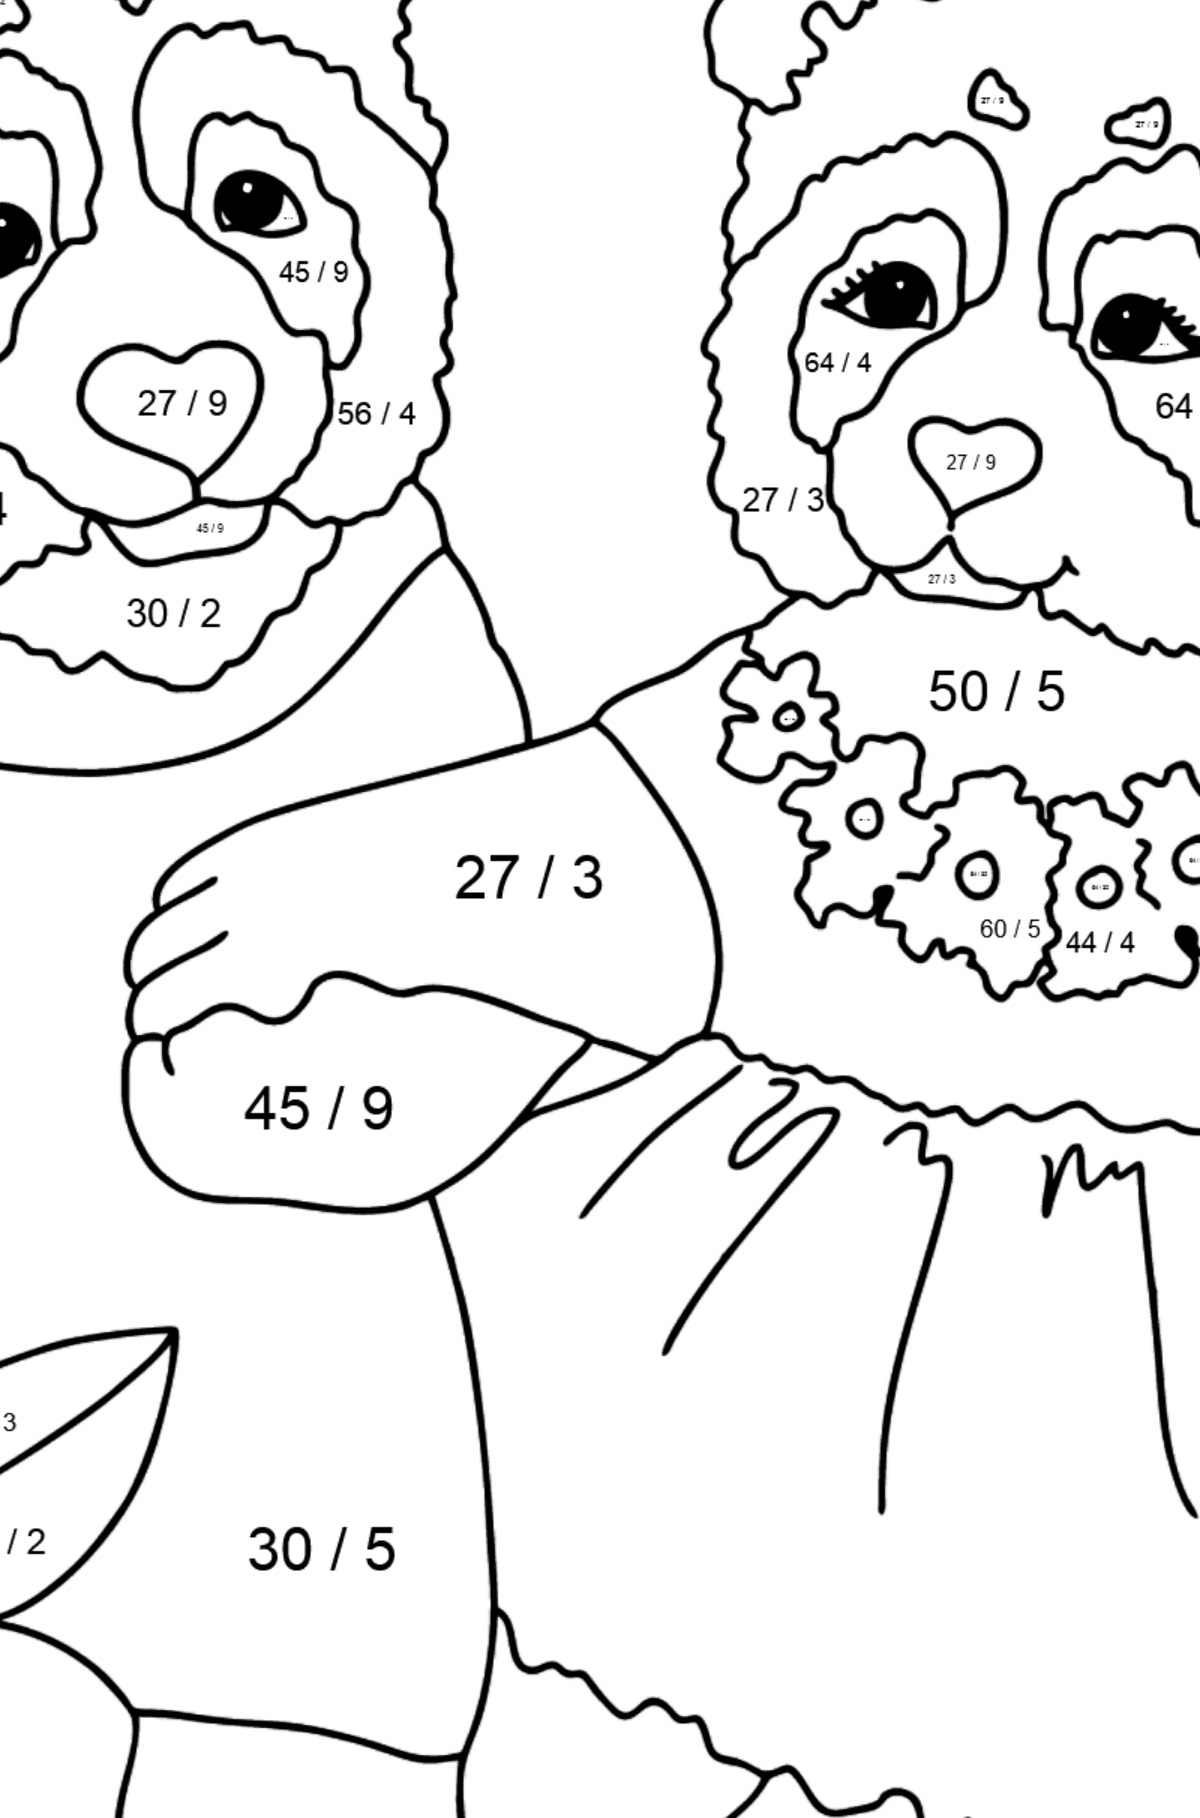 Coloring Page - Pandas are Having a Rest - Math Coloring - Division for Kids